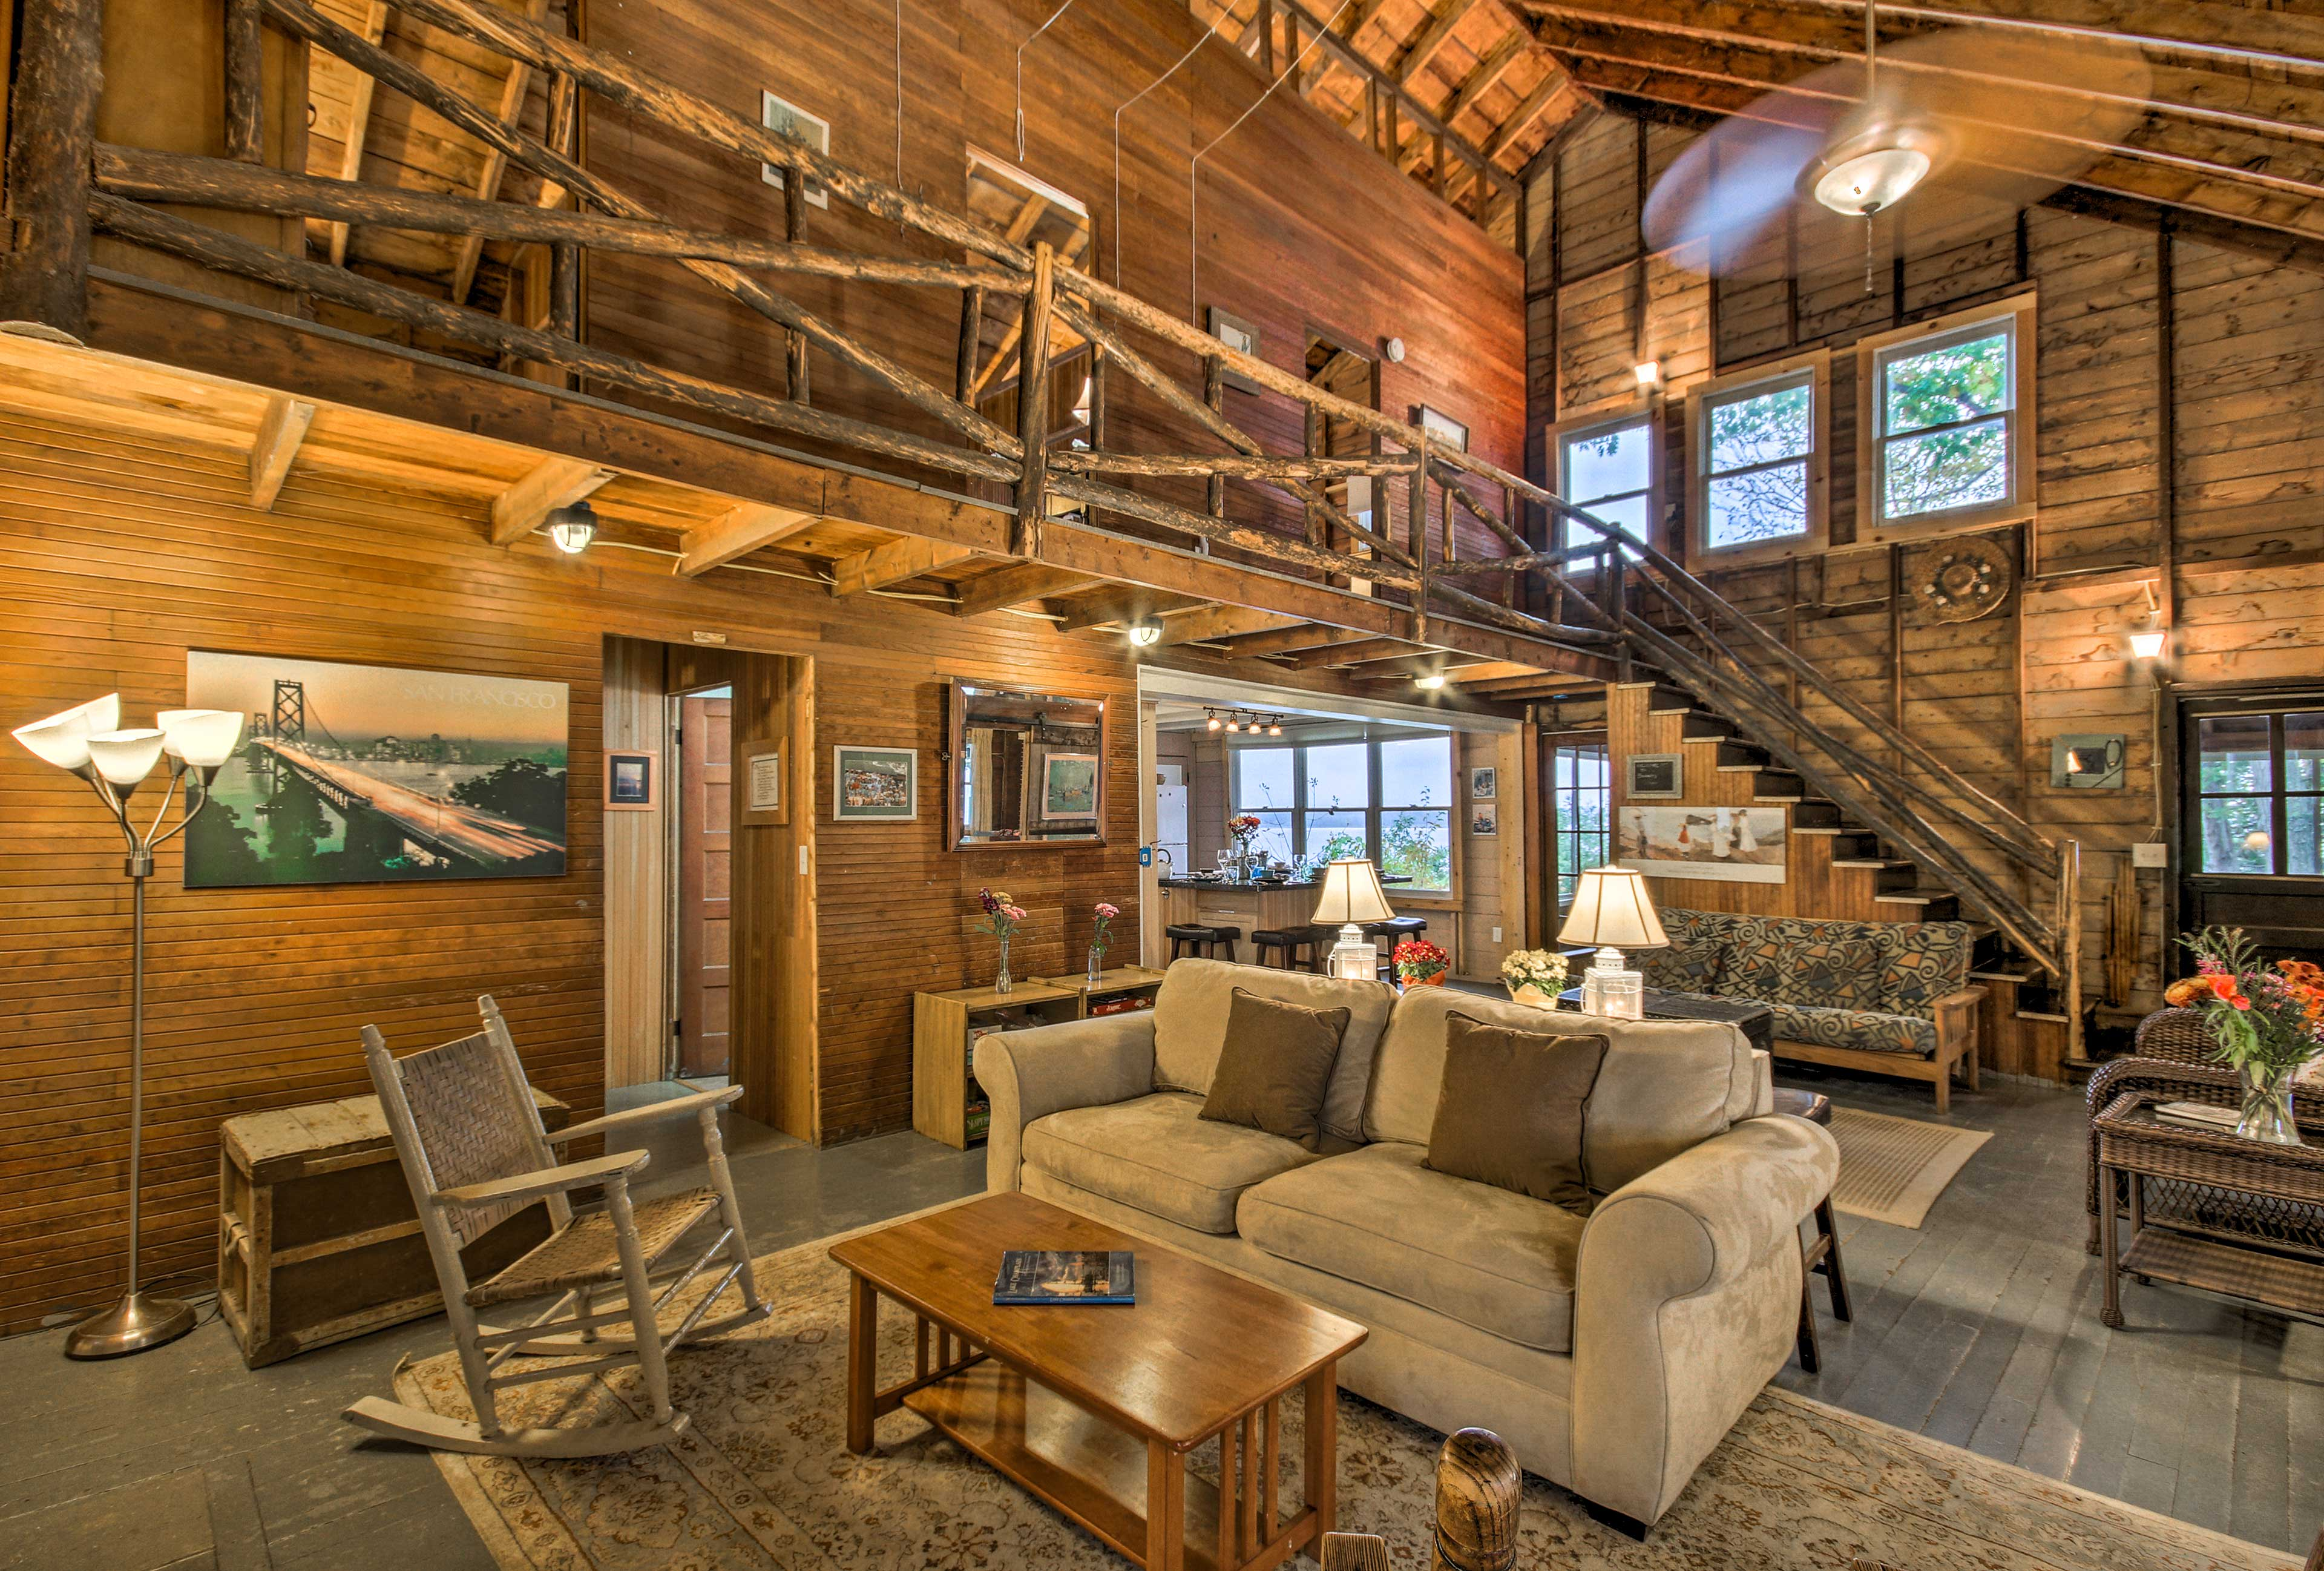 The interior features authentic cedar logs from the home's 1920's construction.